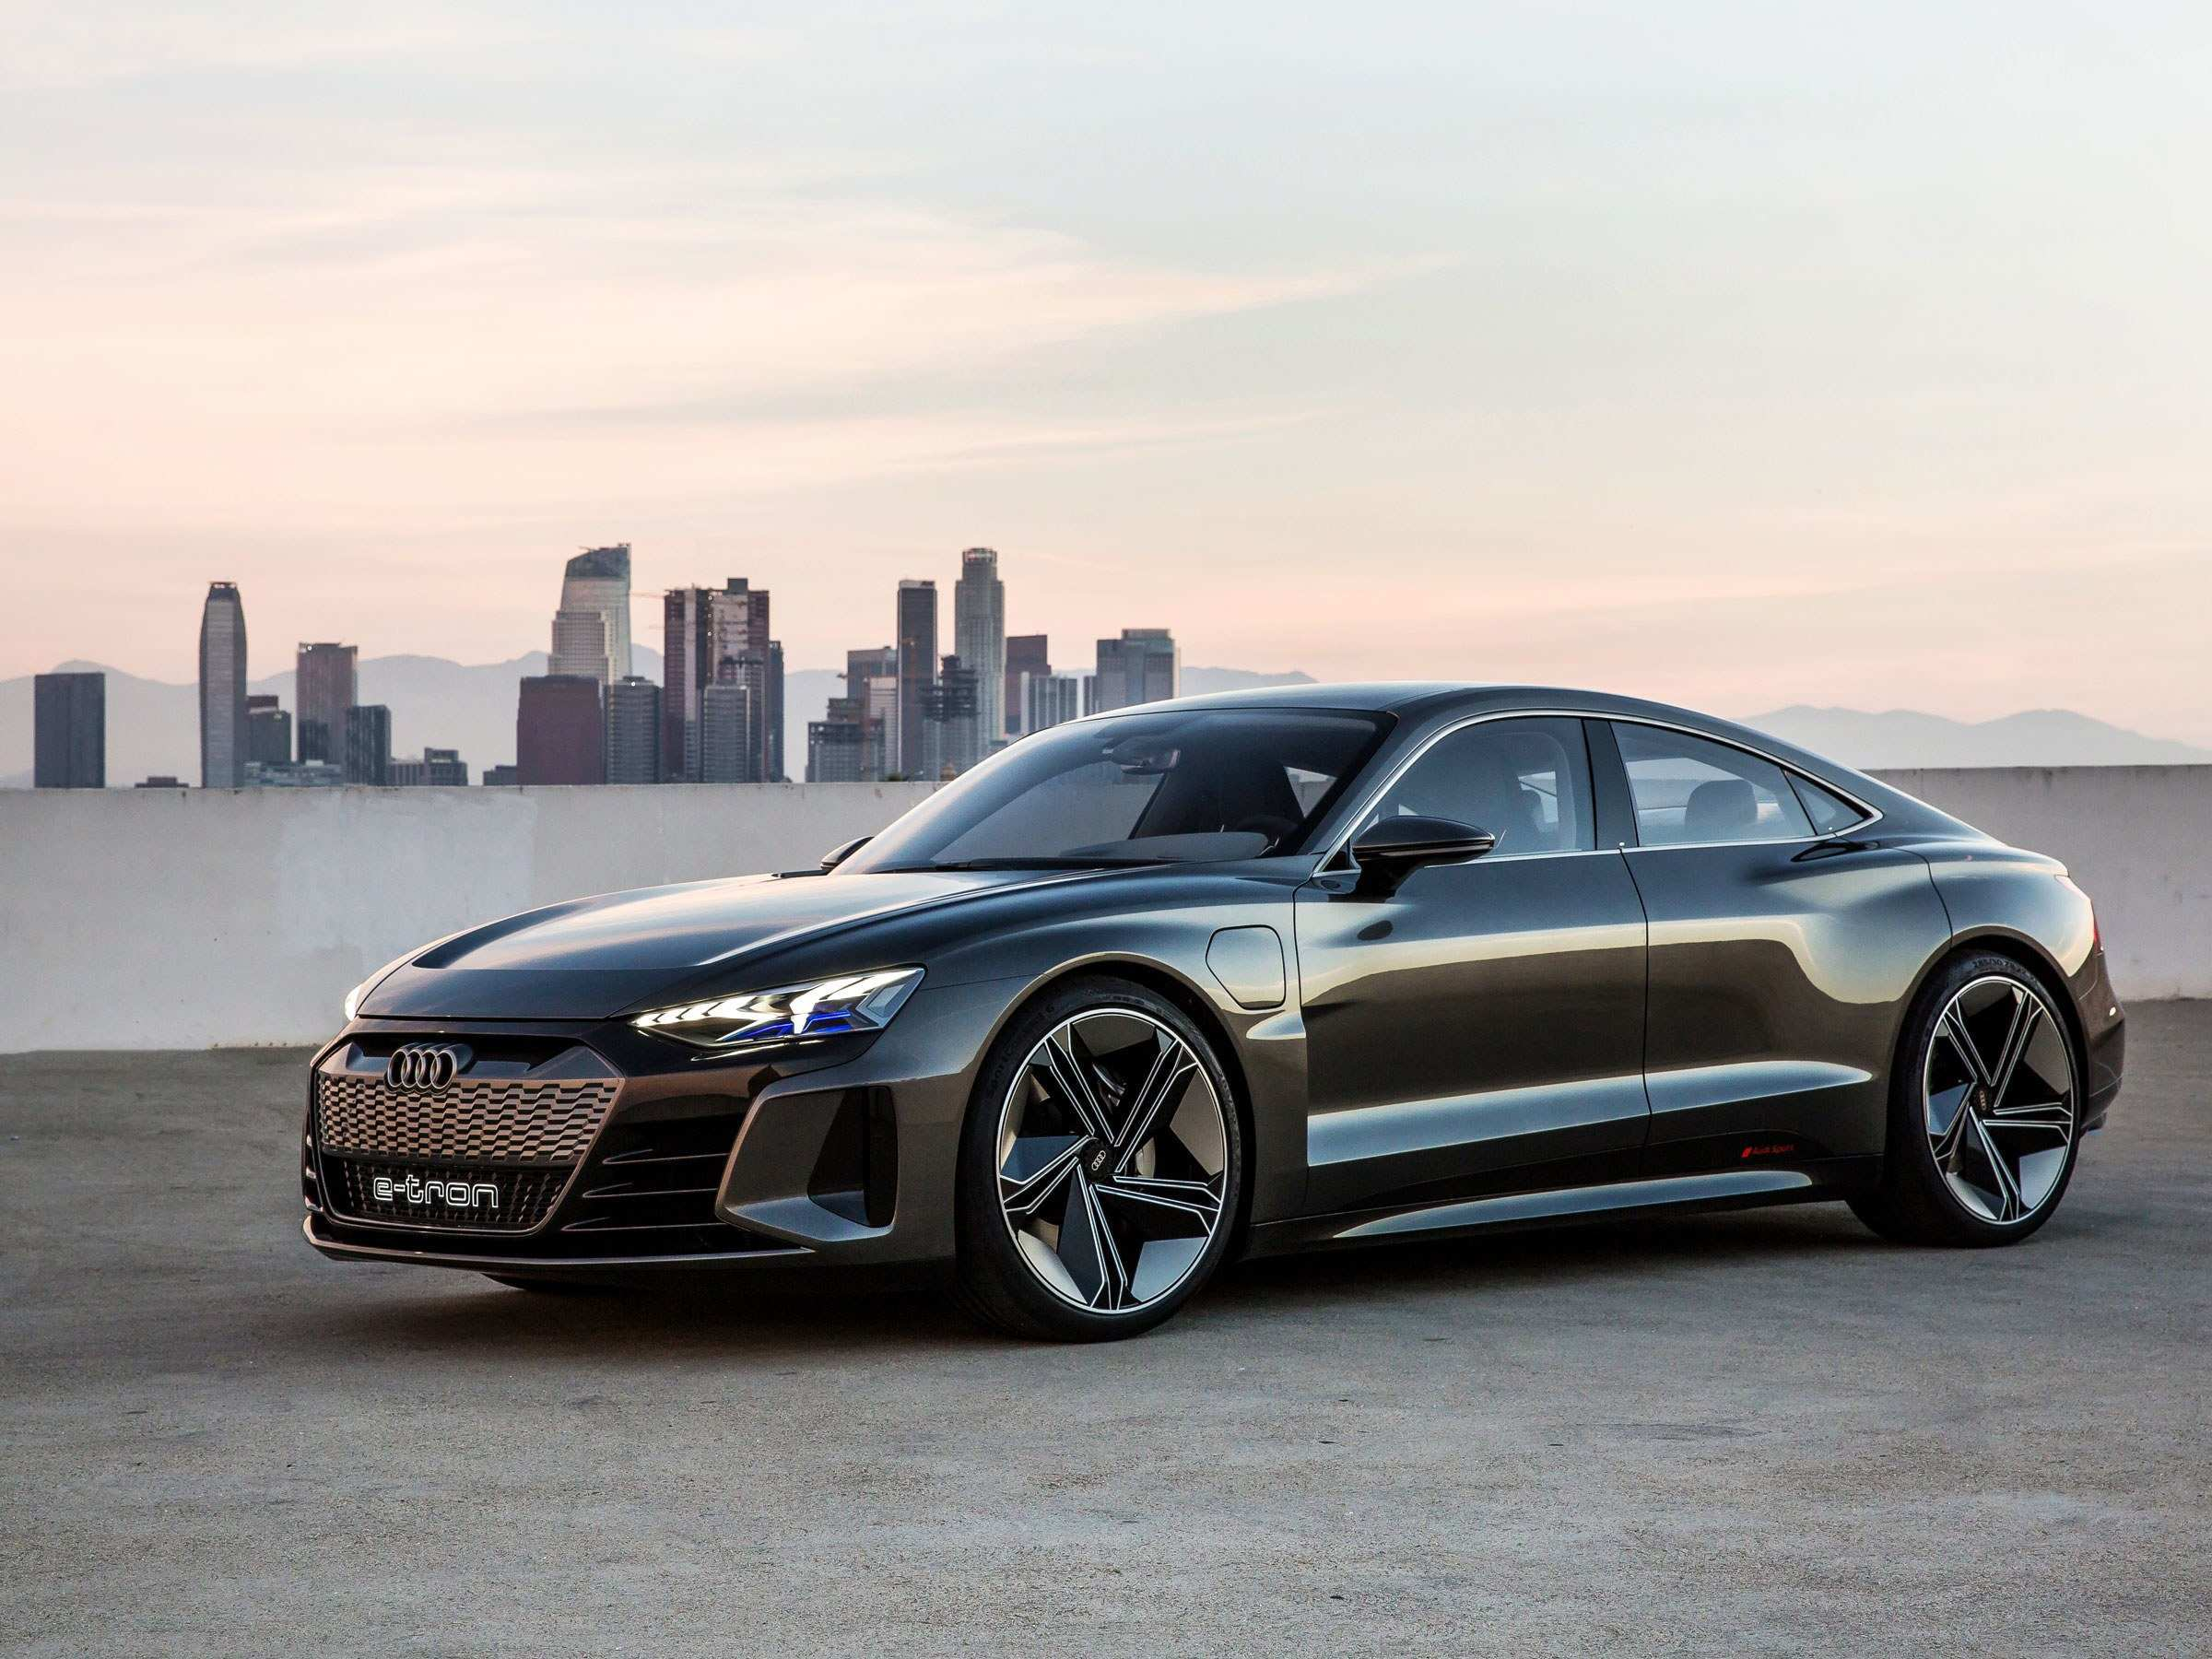 11 Best Review Audi Hybrid Cars 2020 Overview for Audi Hybrid Cars 2020